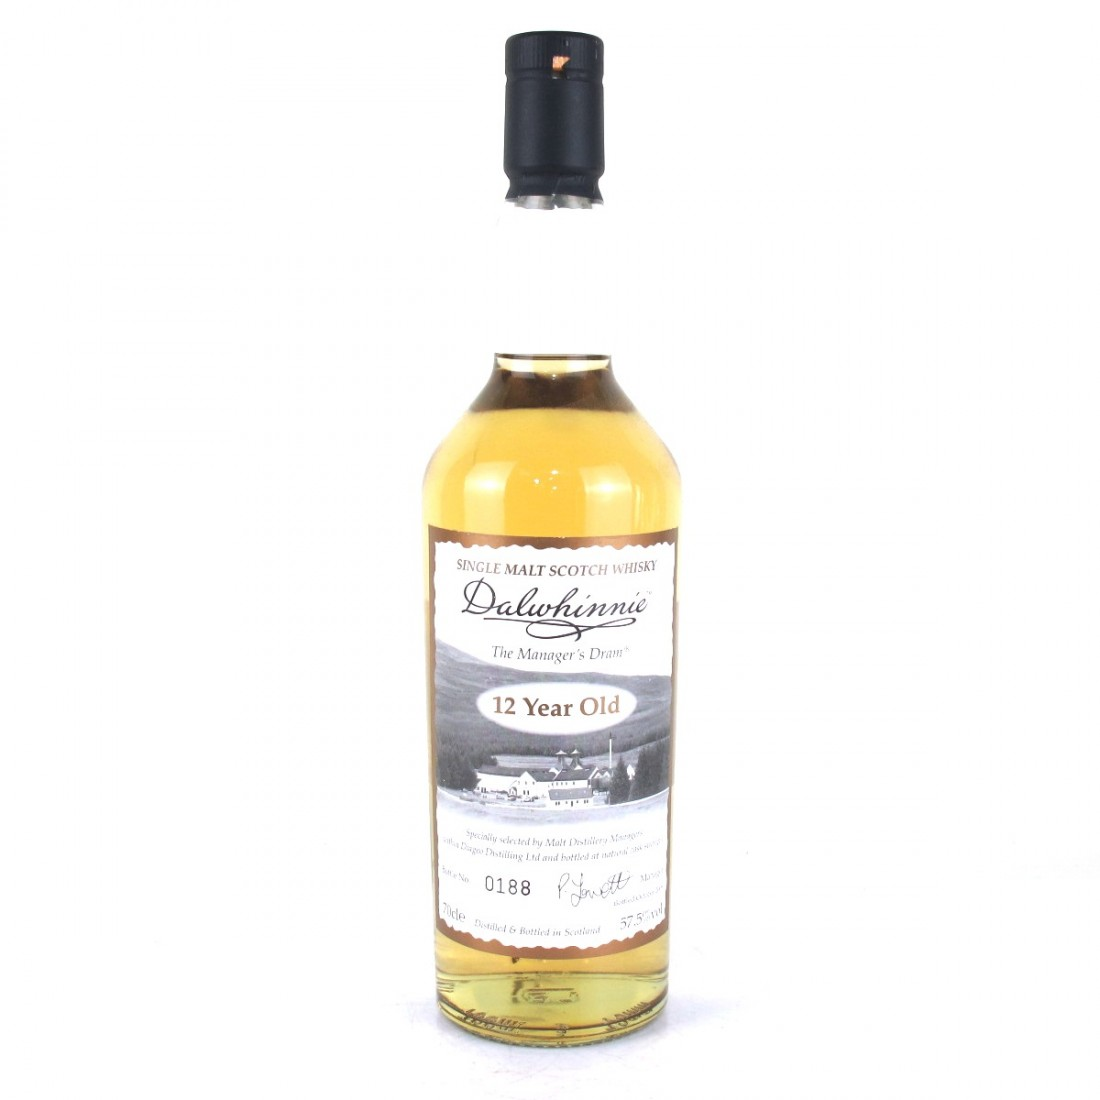 Dalwhinnie 12 Year Old Manager's Dram 2009